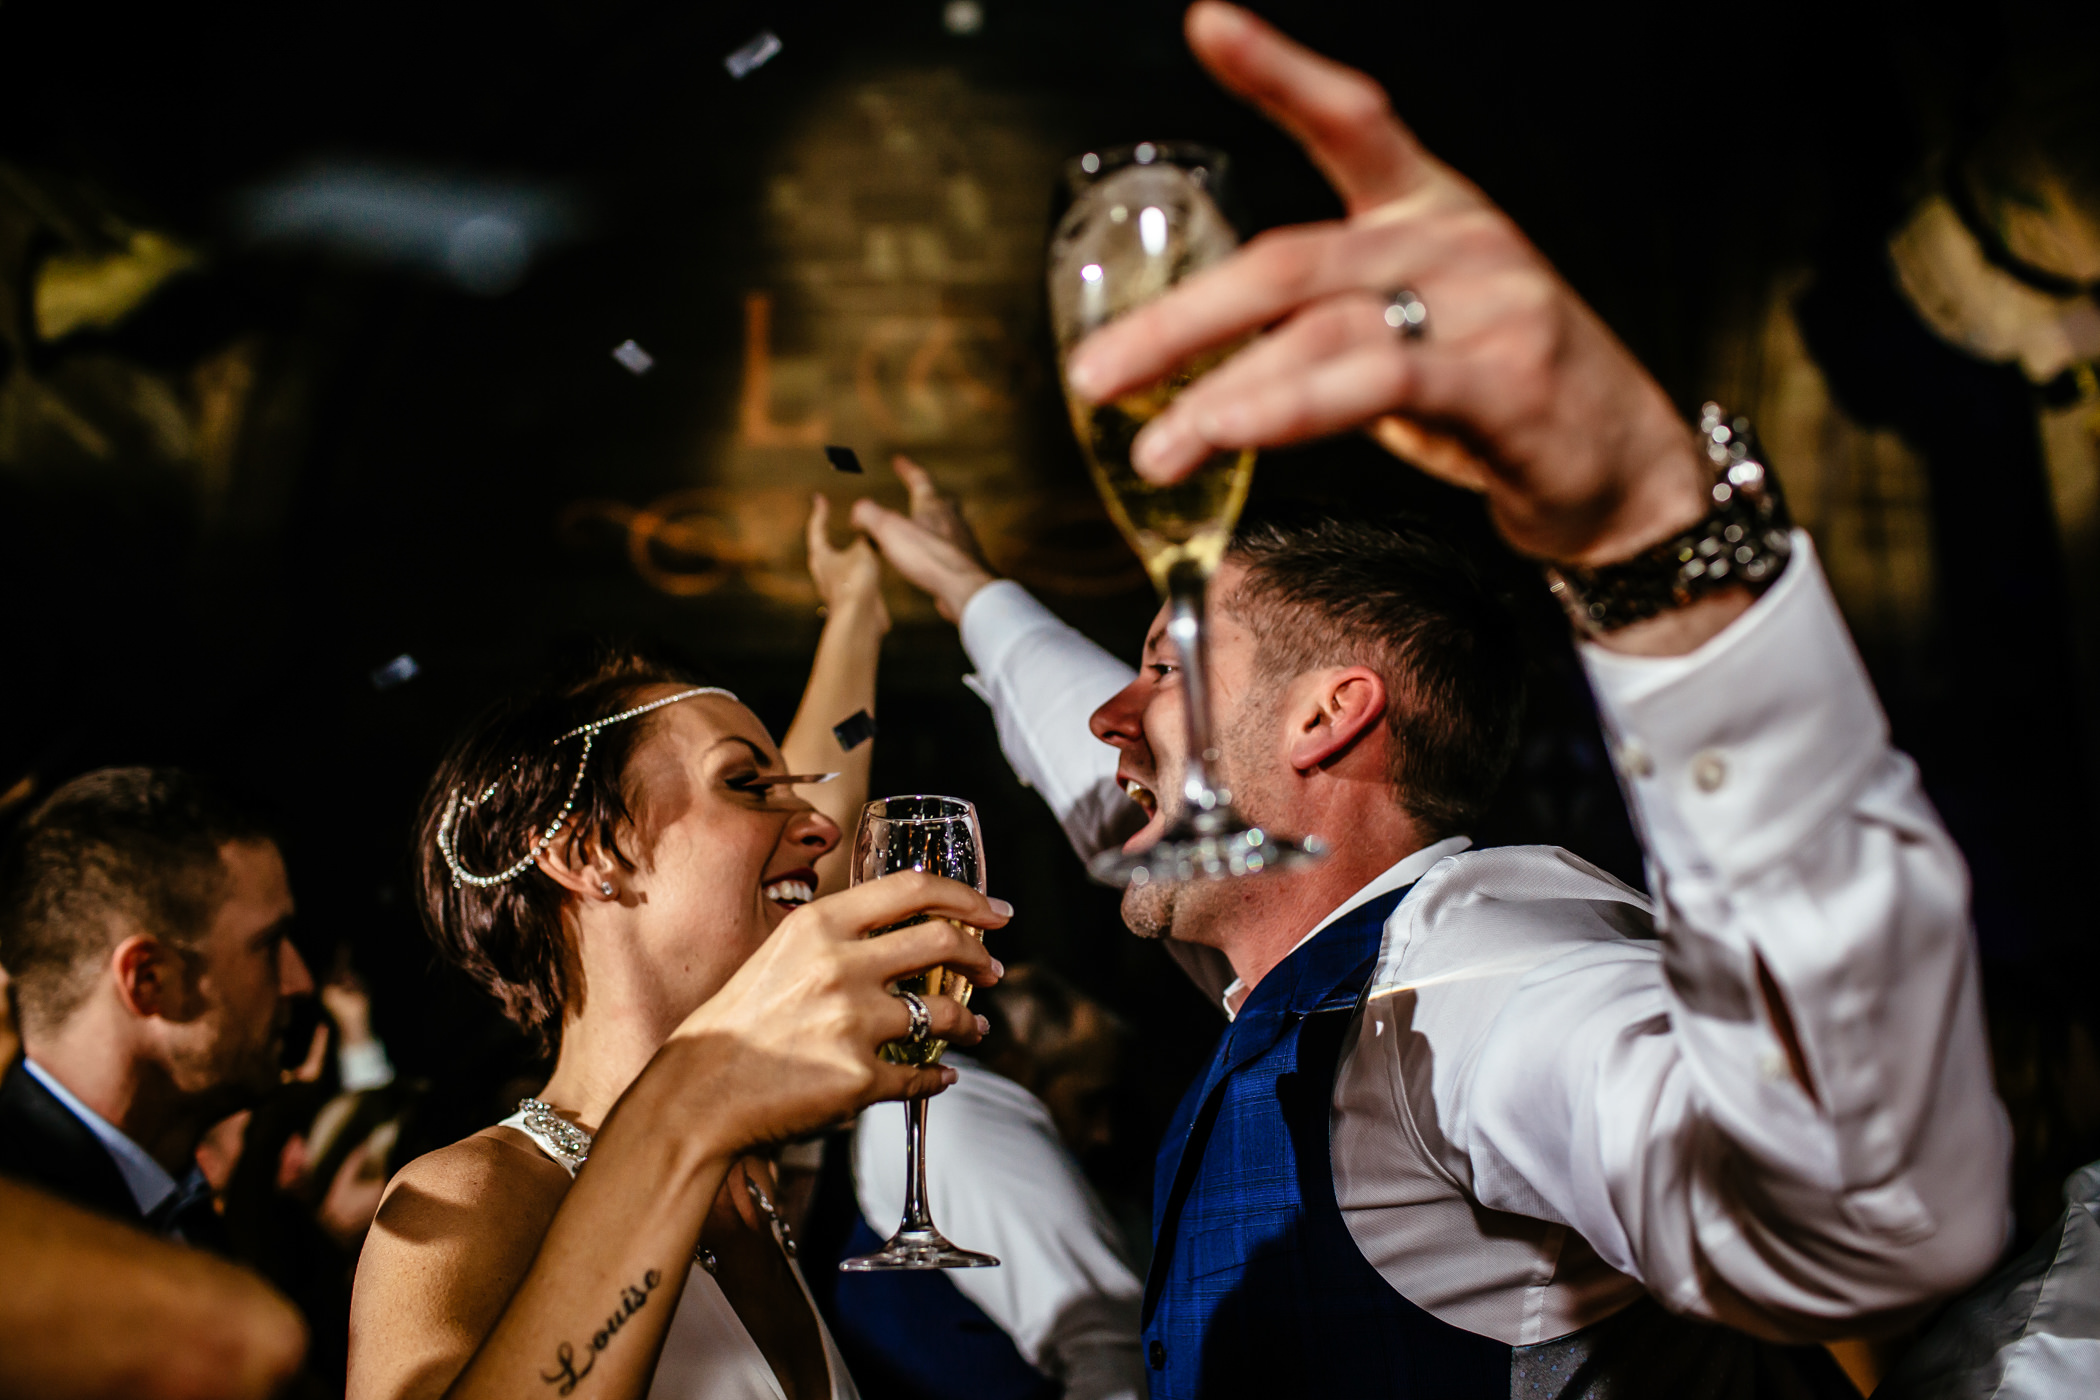 Louise & Ant - New Year's Eve Wedding Peckforton Castle